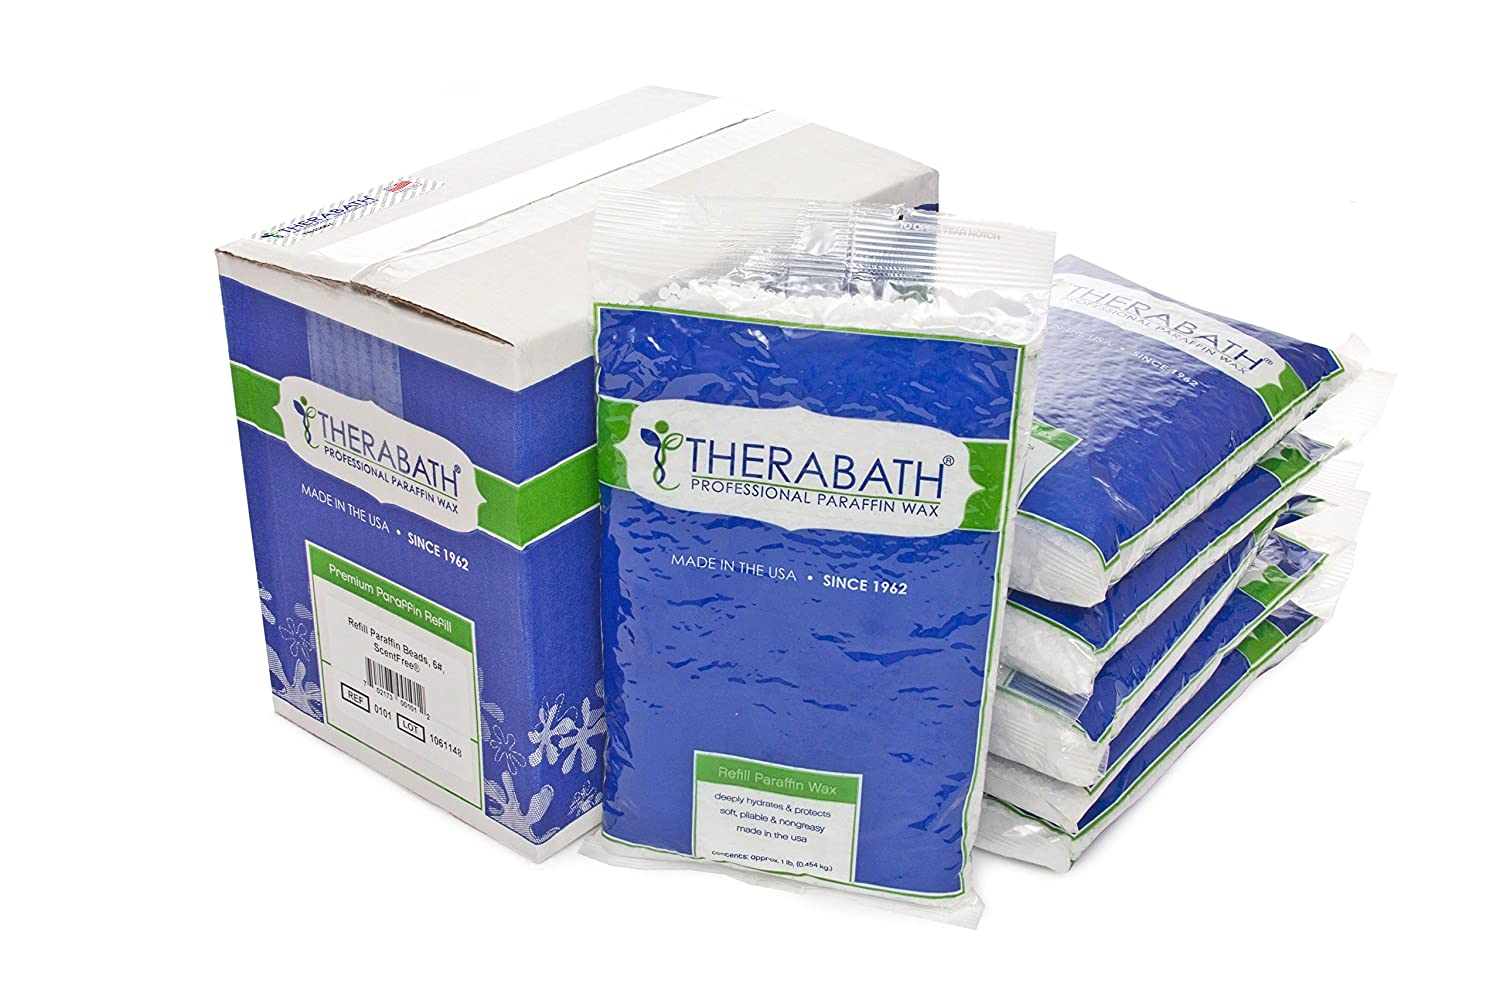 Therabath Paraffin Wax Refill - Use To Relieve Arthitis Pain and Stiff Muscles - Deeply Hydrates and Protects - 6 lbs (PeachE) 0102